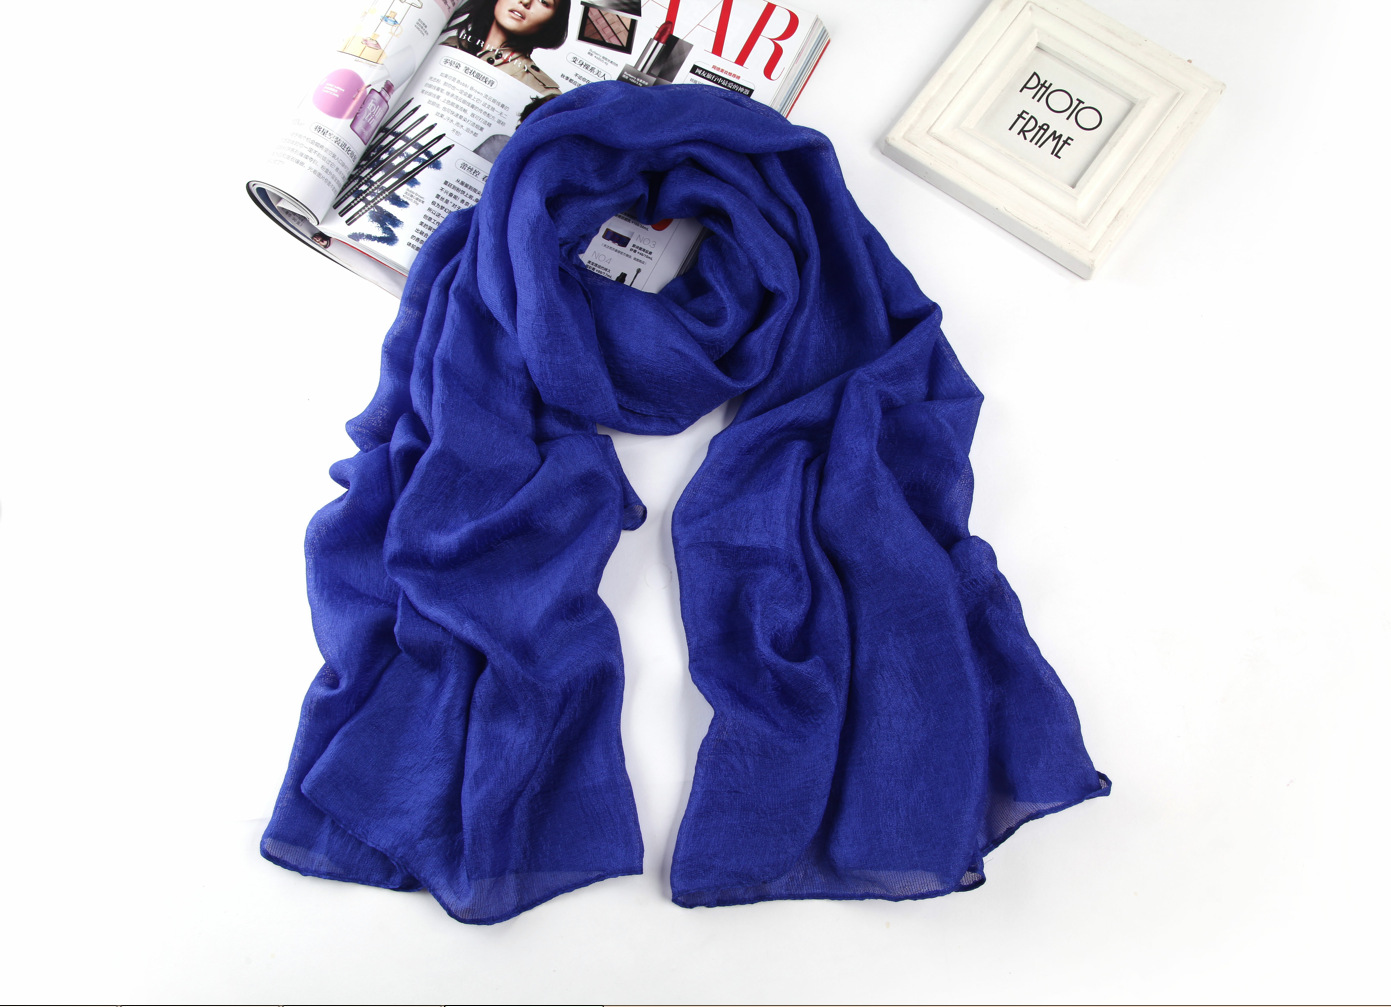 Fashion Plaid Cashmere Scarves  Gray For Lady  Shawls With Tassel Long Size Wraps Pashmina